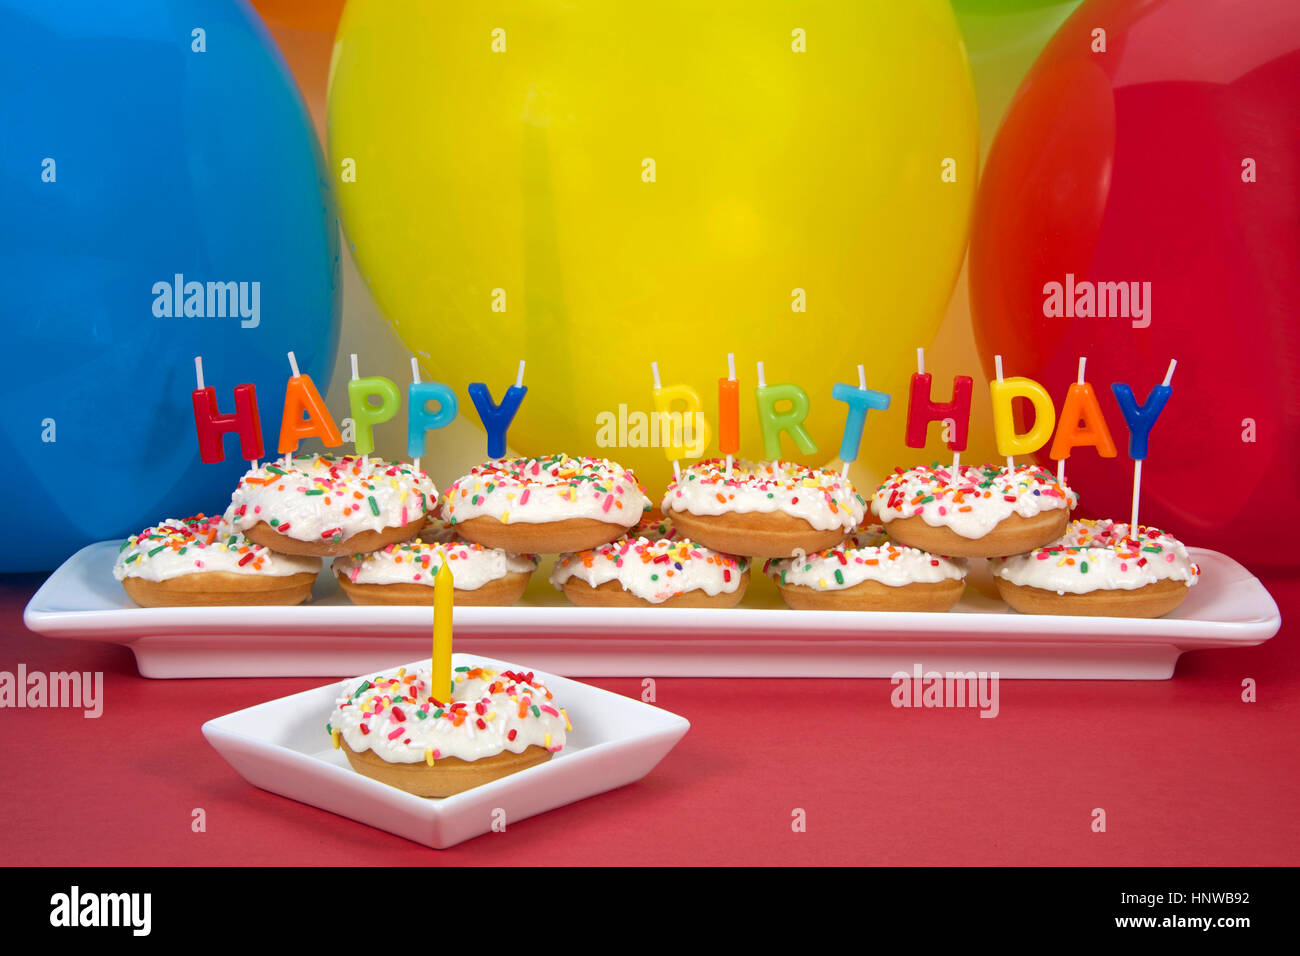 Miniature Donut Cake On Long White Plate With Happy Birthday Candles One Single Square Yellow Candle Perfect 1st